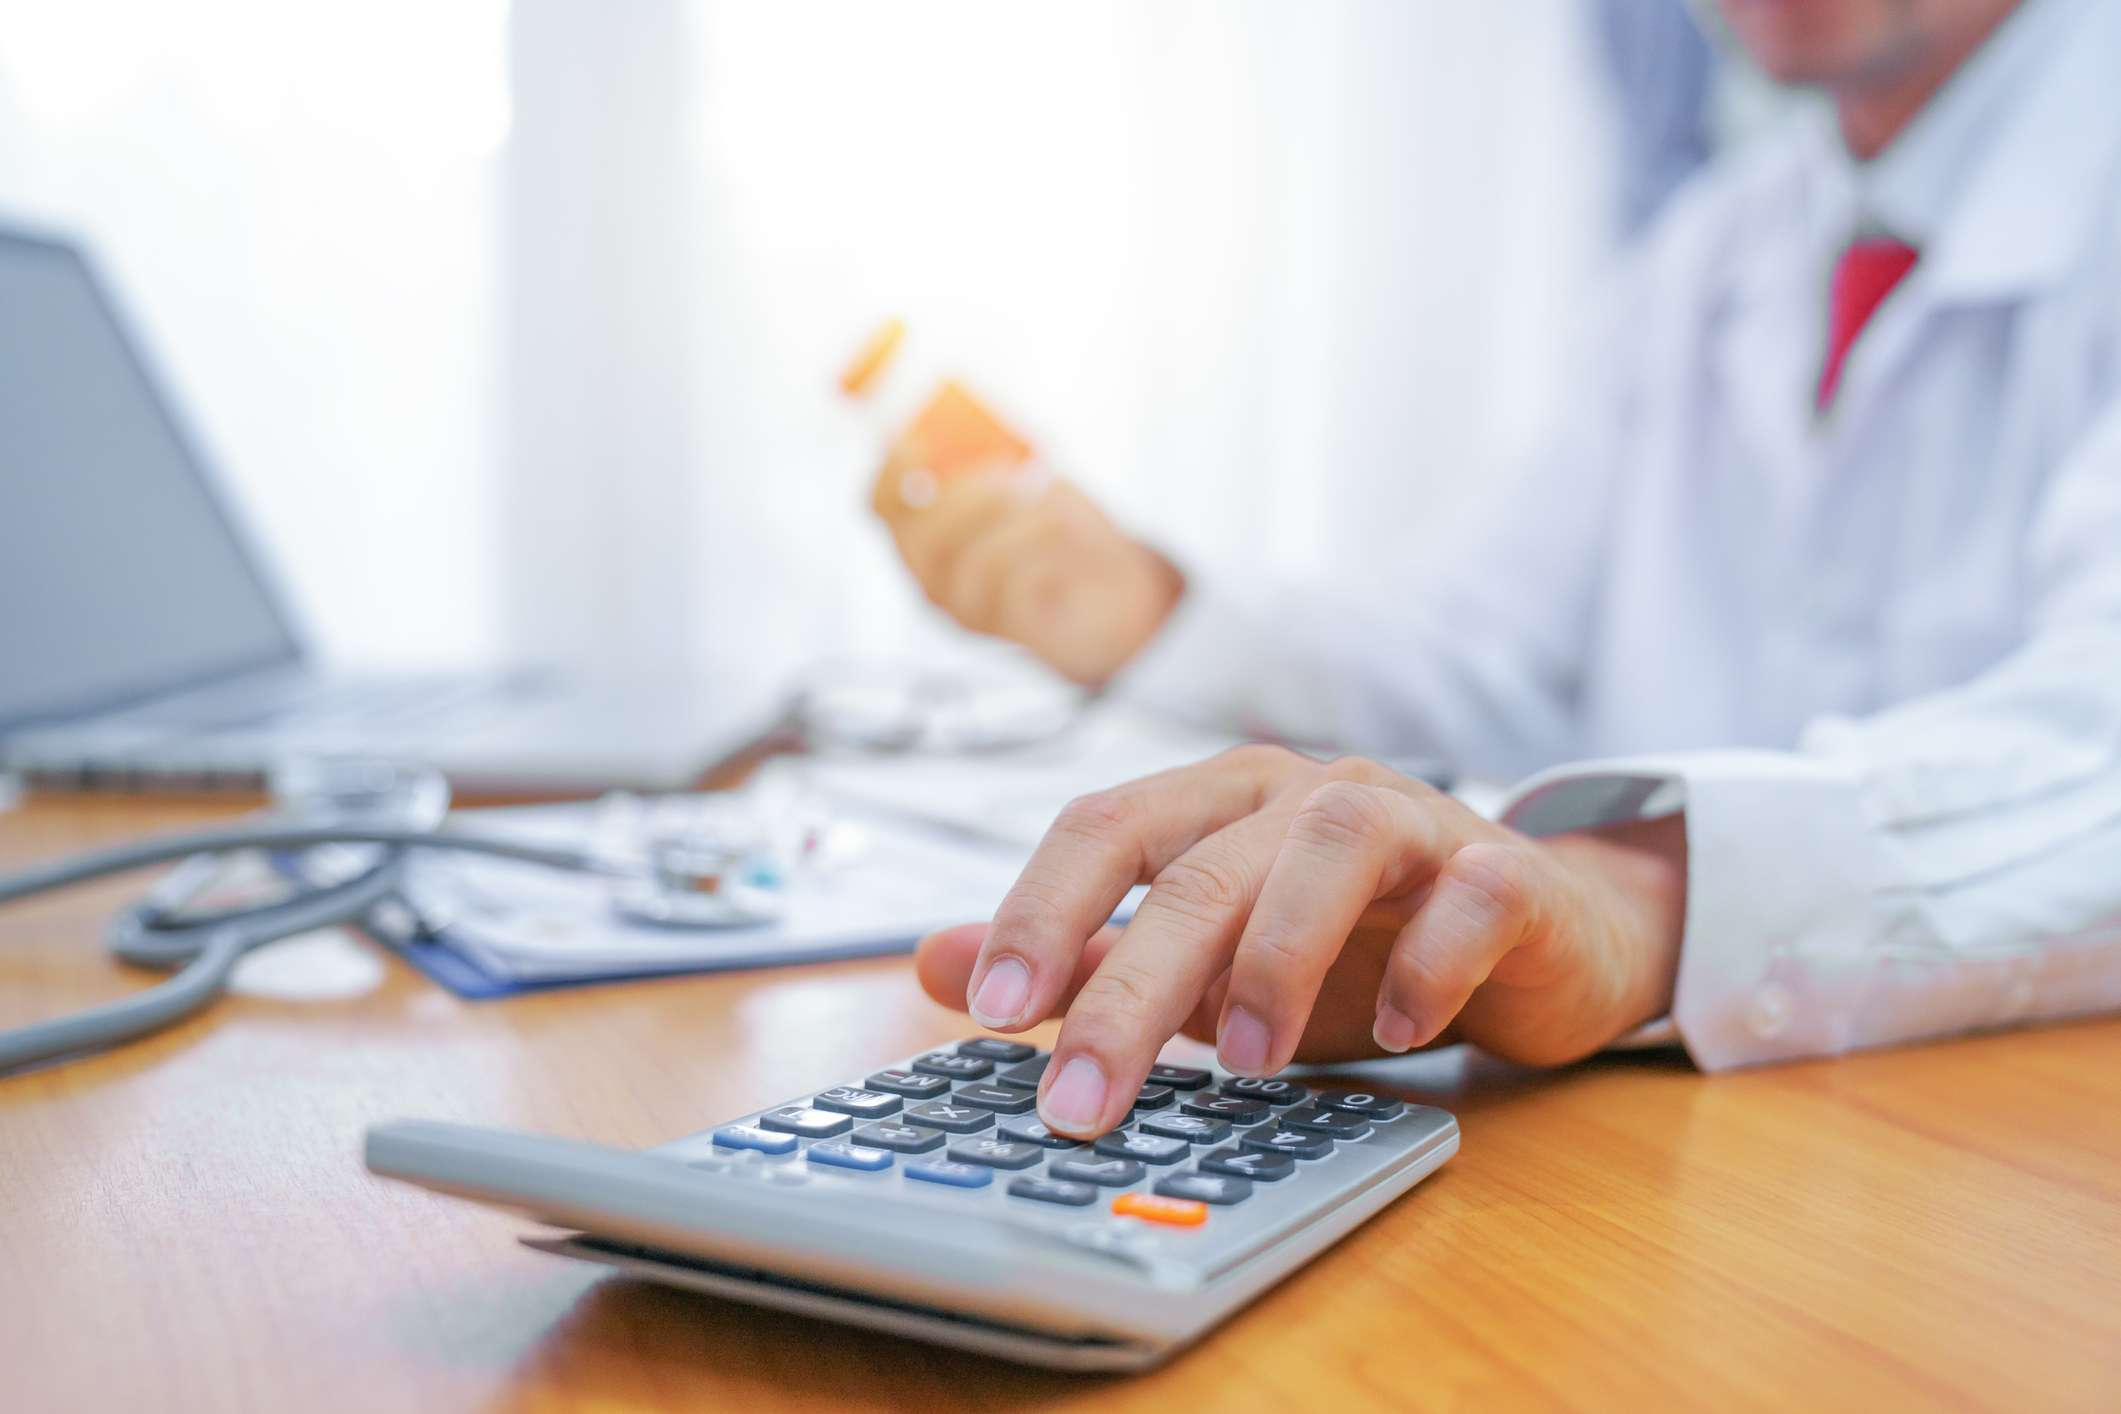 What Do You Learn At Medical Billing School